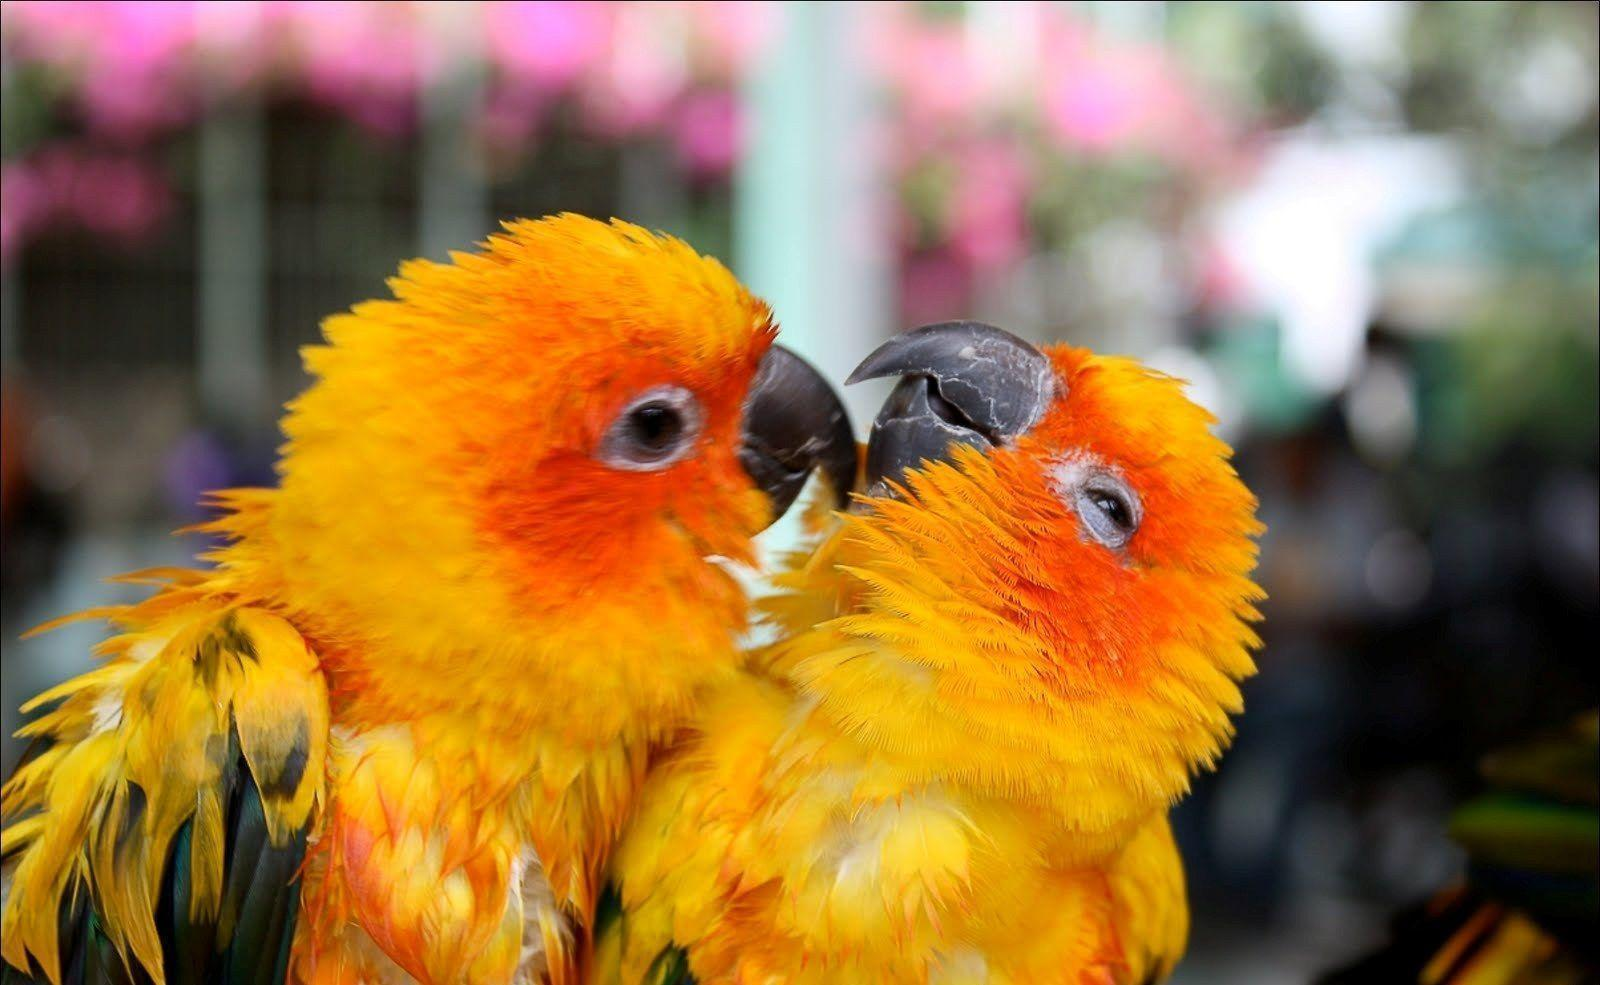 Love birds wallpaper for android phone